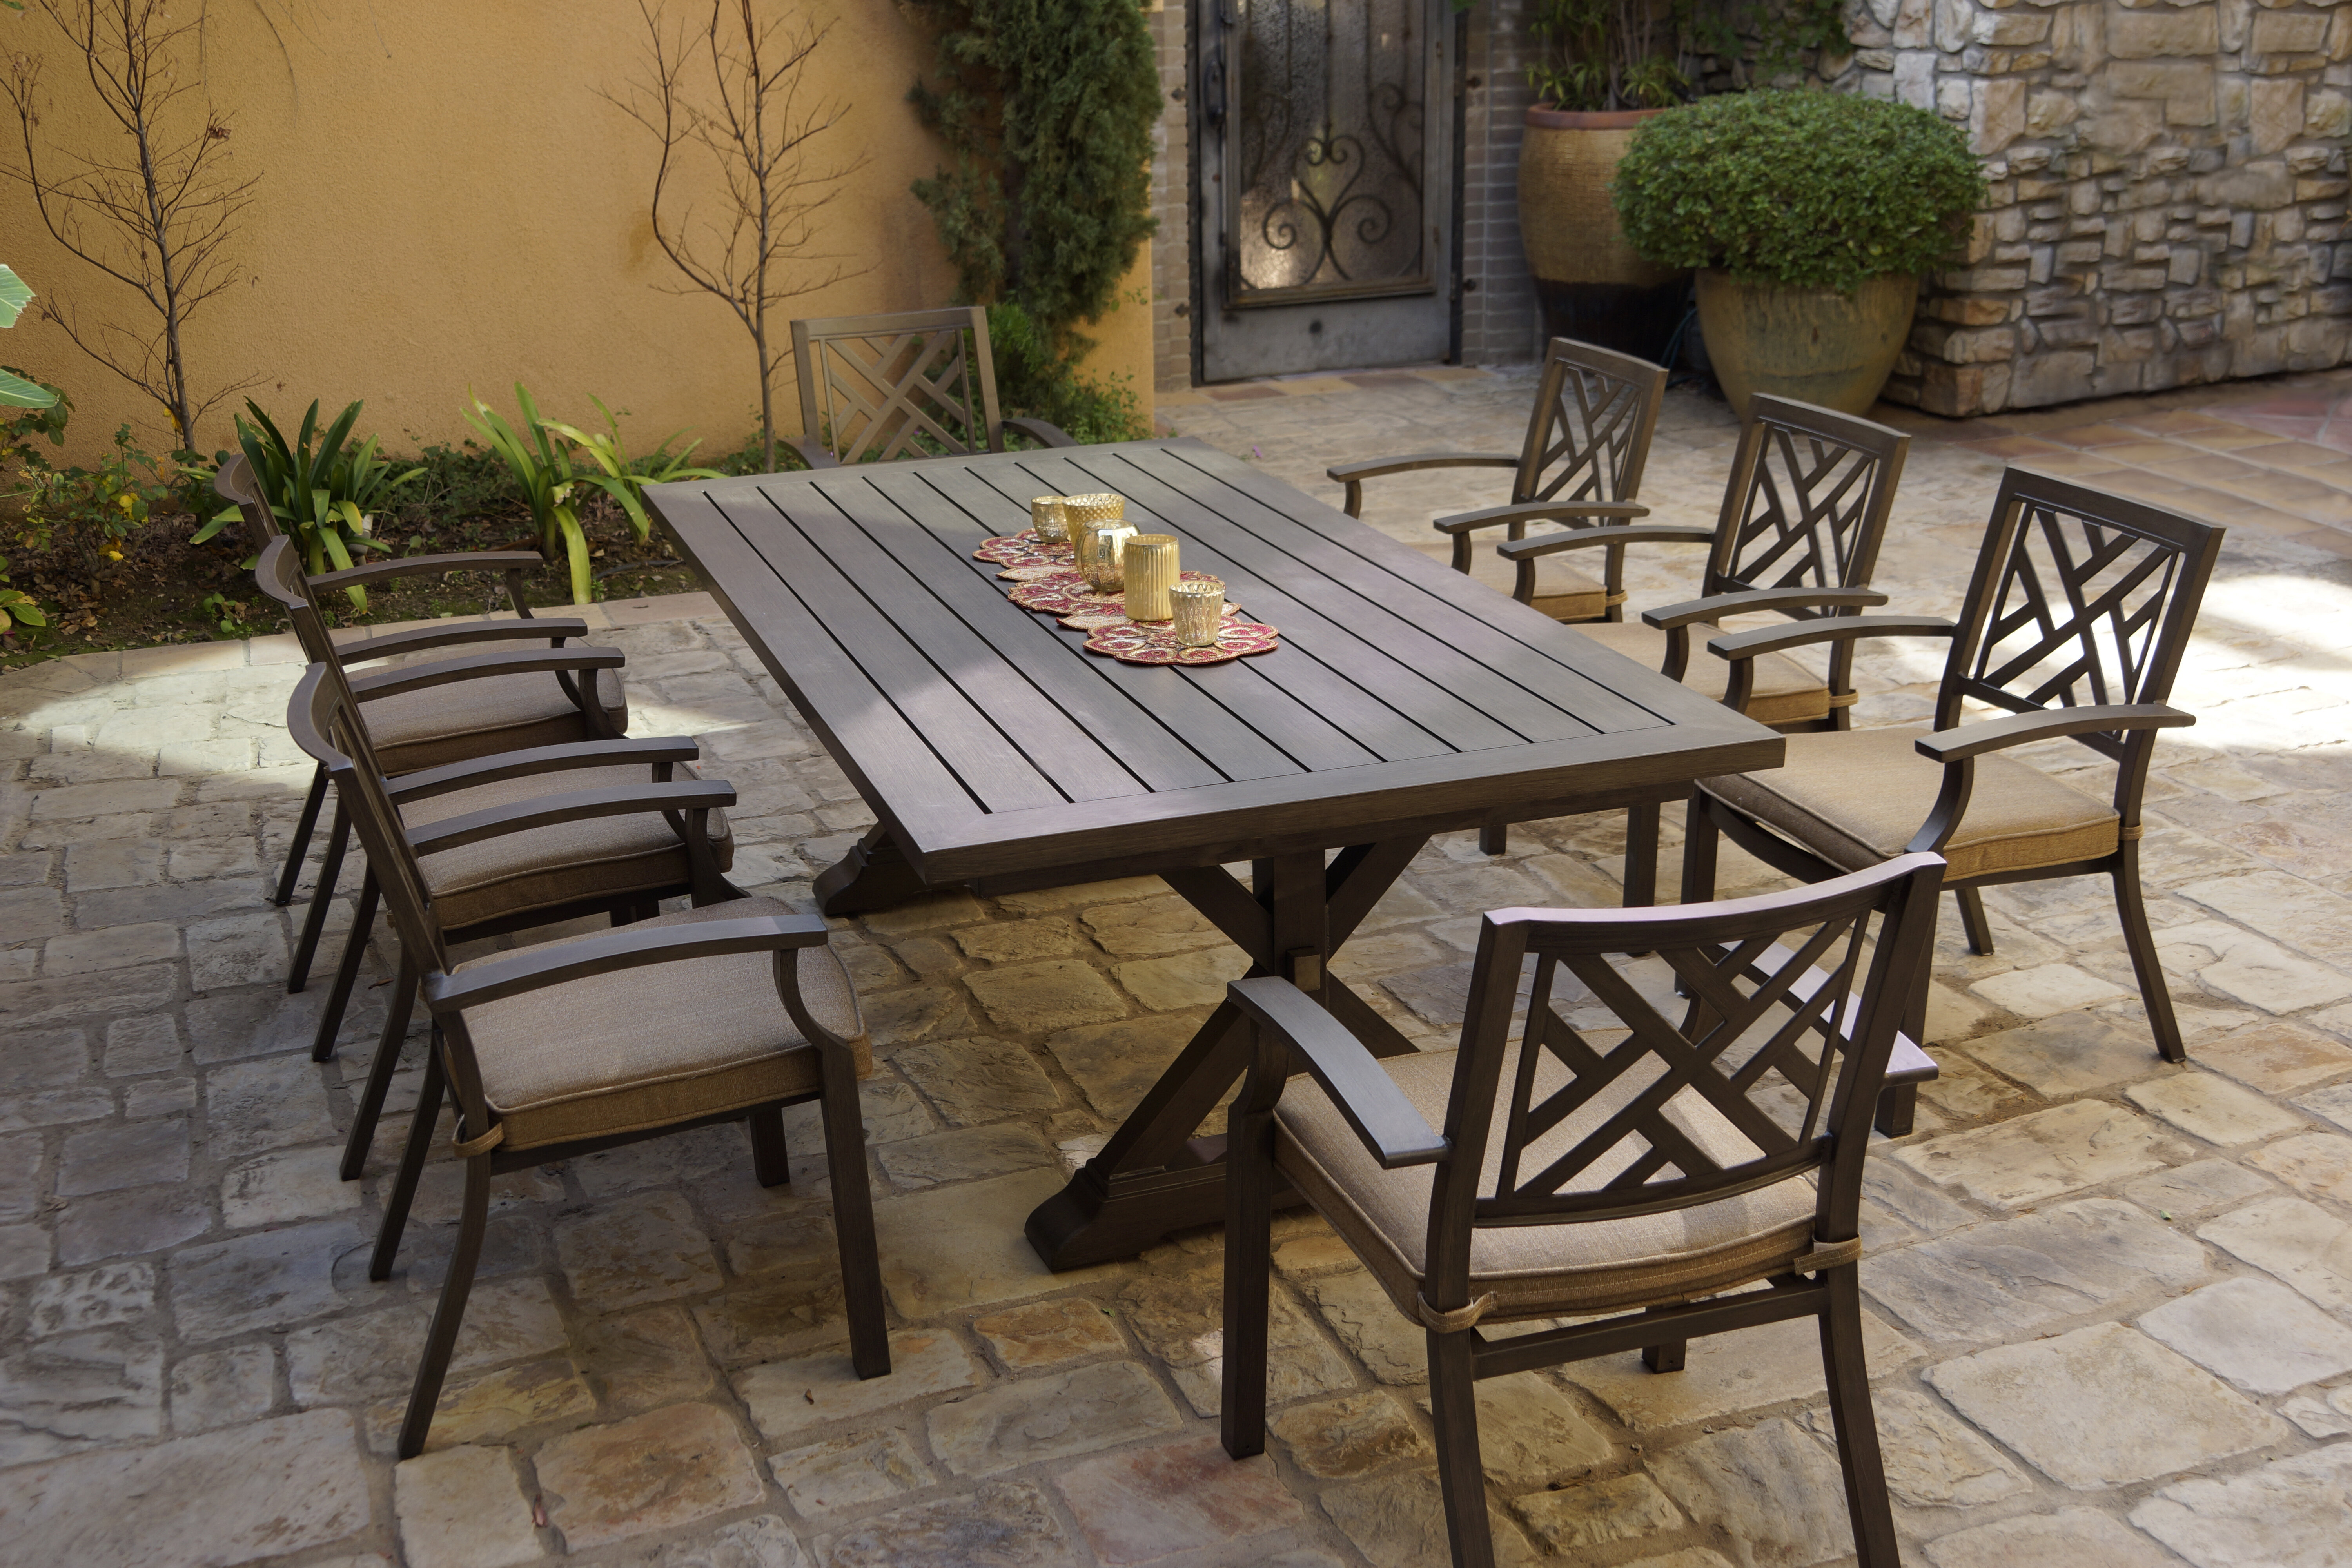 9 Square Patio Bistro Tempered Glass Table Top with Umbrella Hole ...